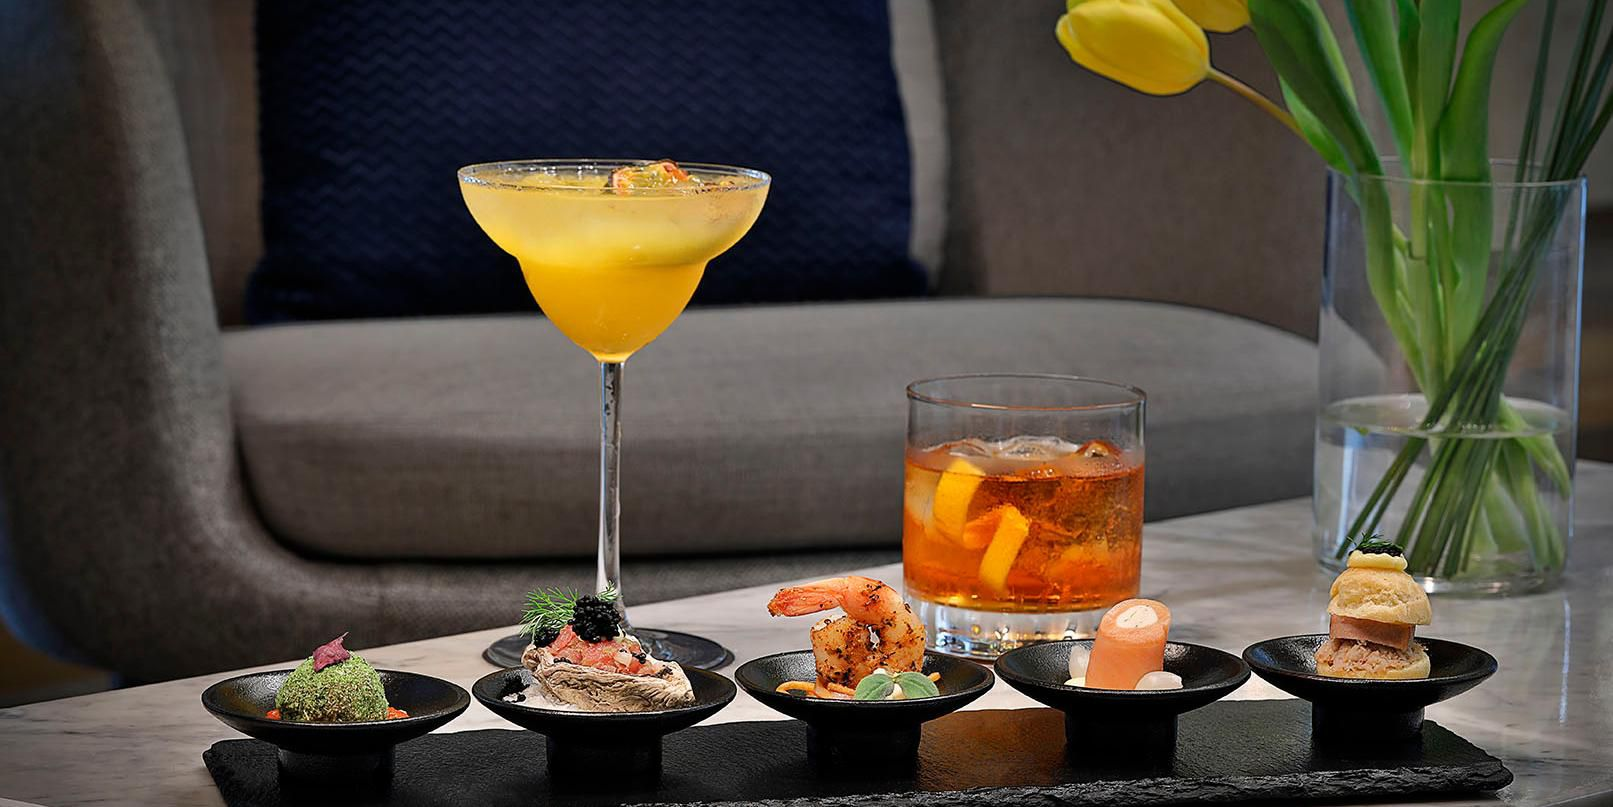 The Lounge, voco Dubai hotel lobby, breakfast, lunch and dinner